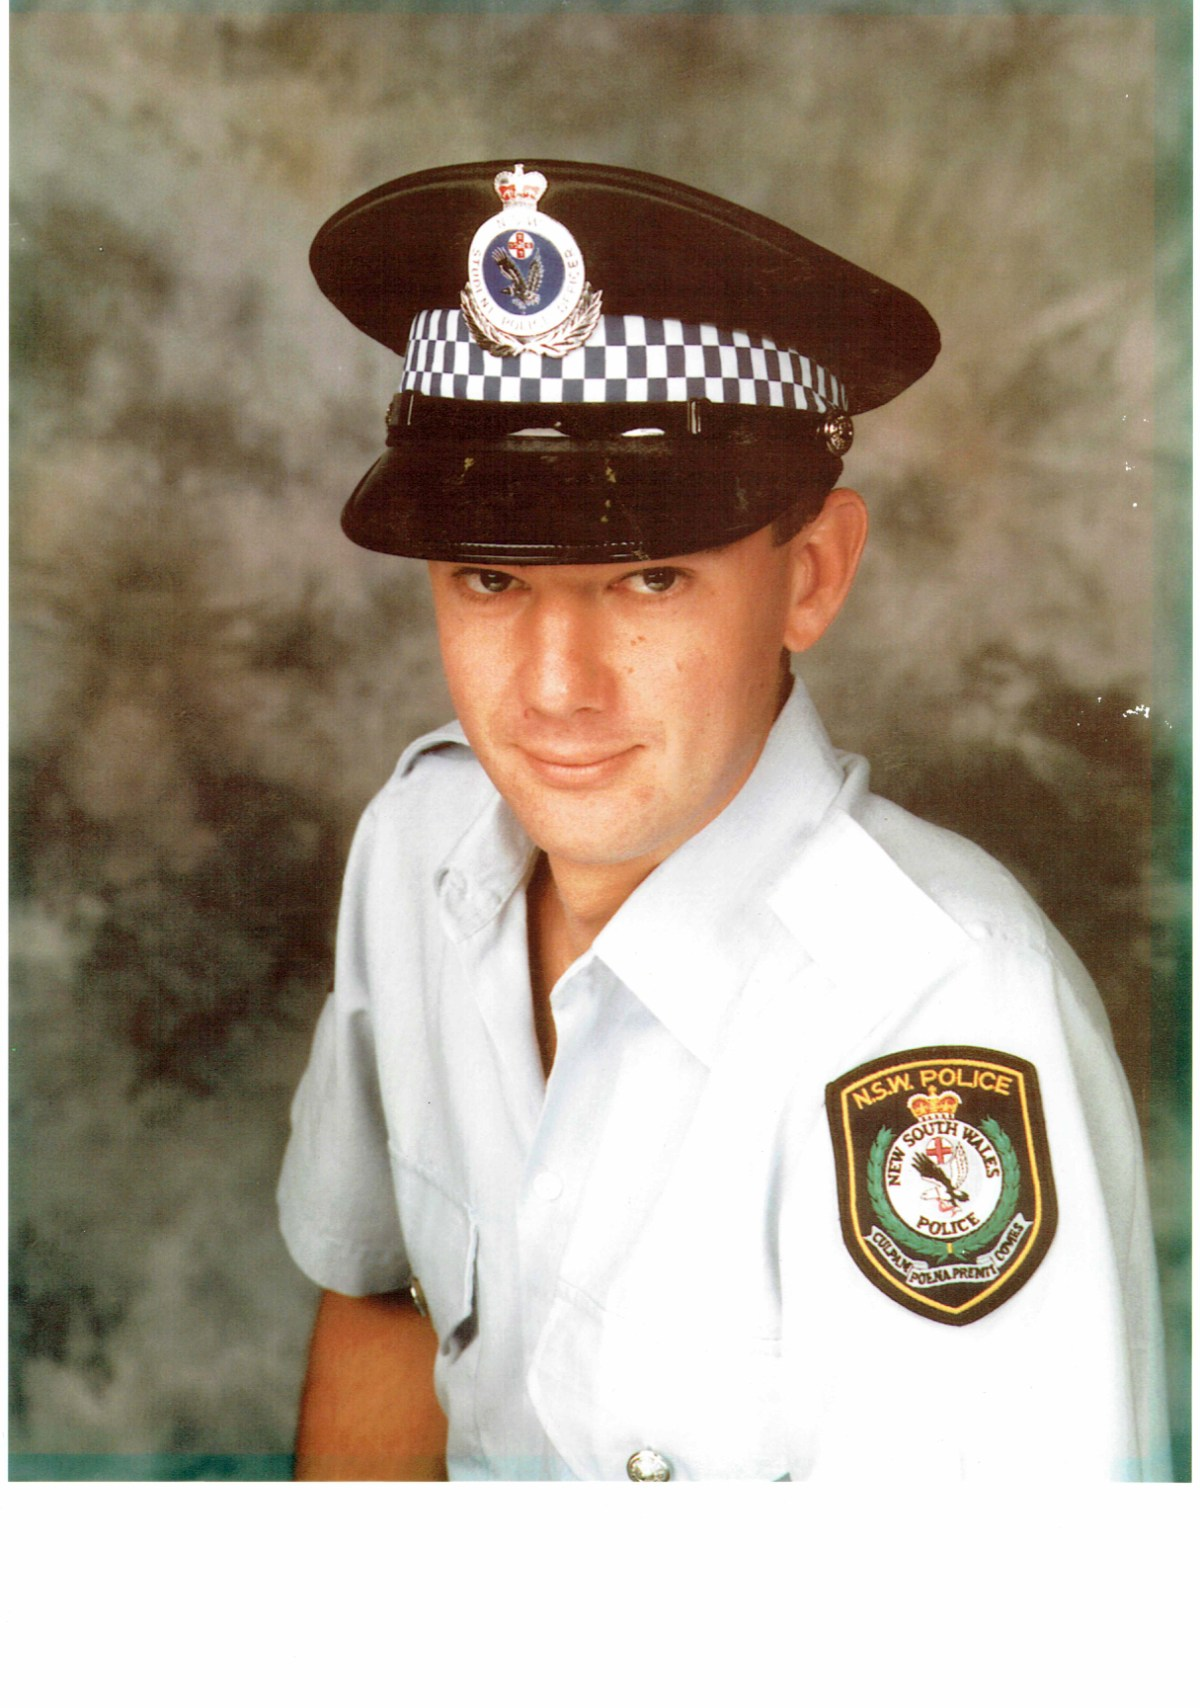 Timothy Kitching at the New South Wales Police Academy